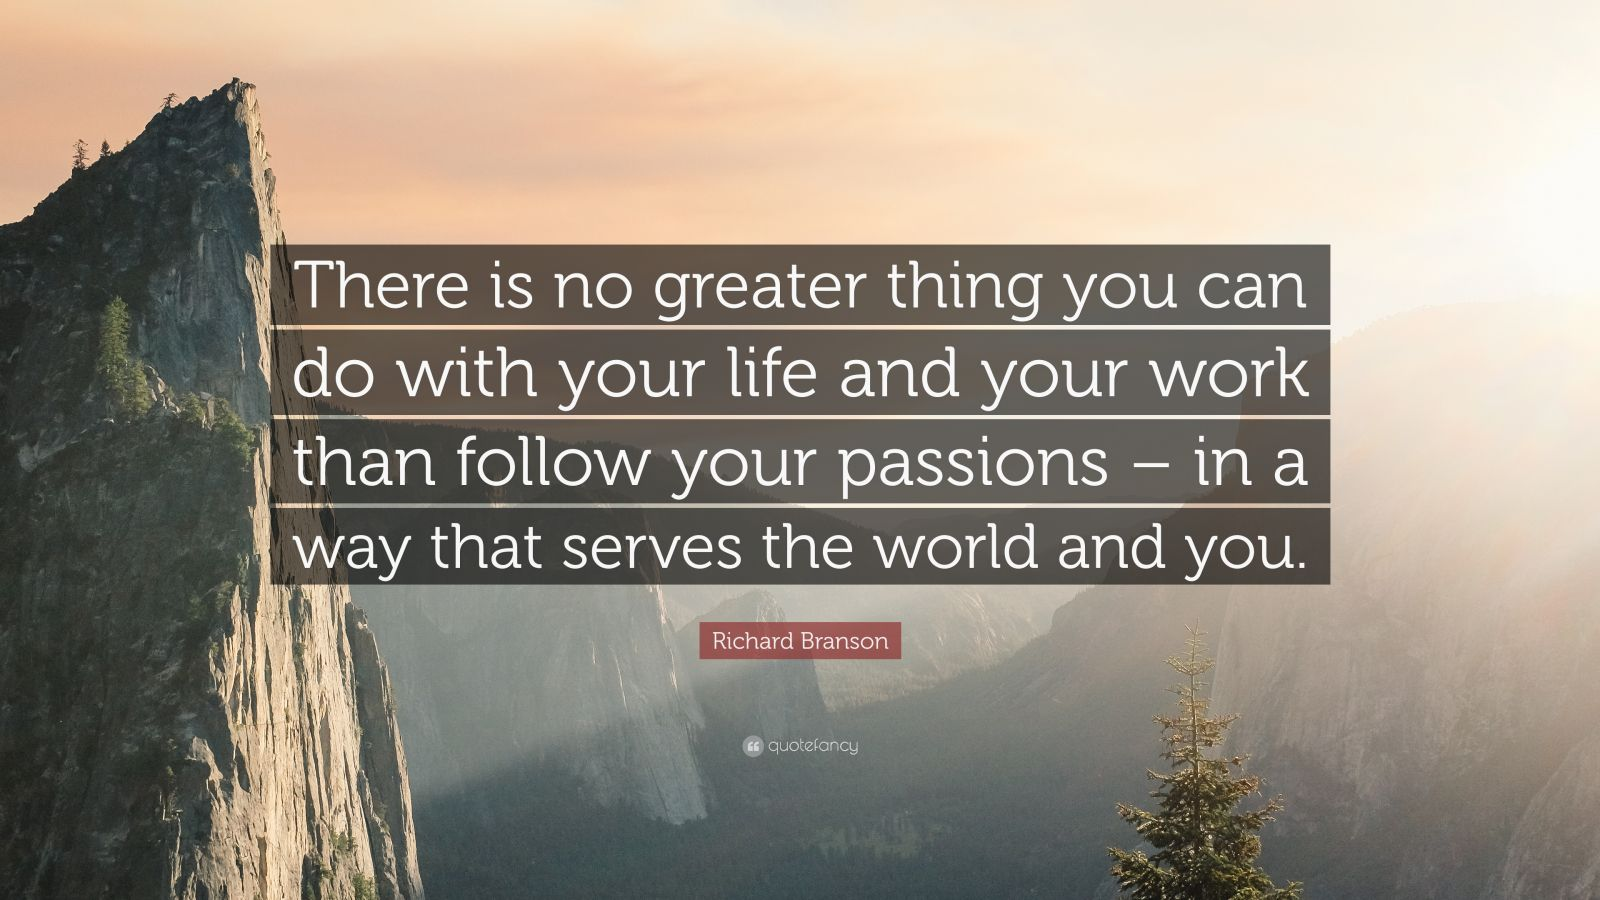 """Richard Branson Quote: """"There is no greater thing you can do with your life and your work than follow your passions – in a way that serves the world and you."""""""